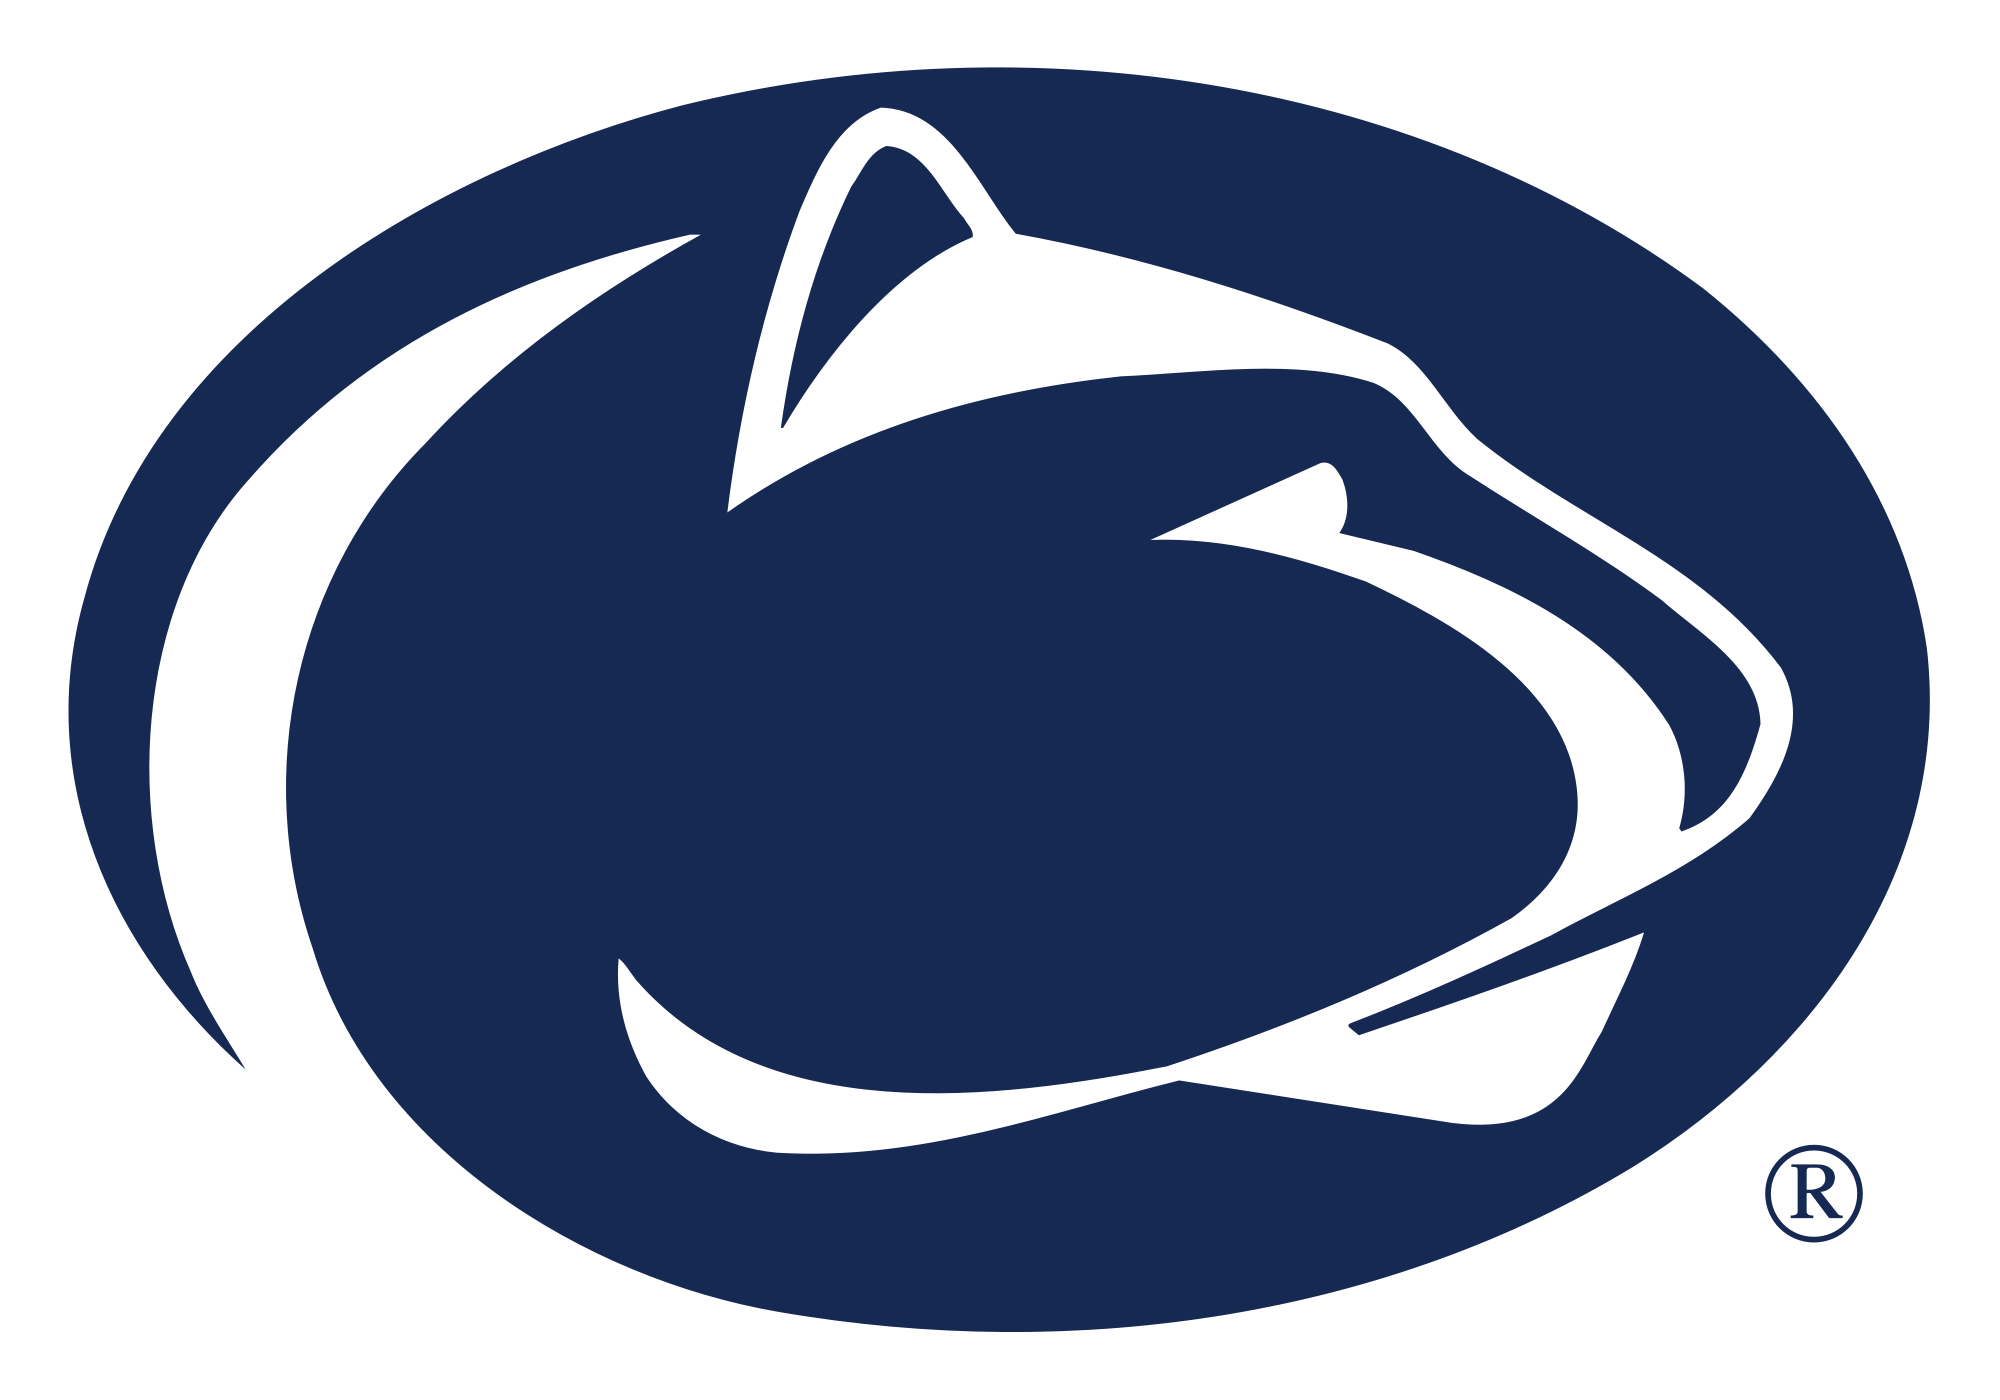 Penn State Logo Penn State Logo Penn State Penn State Nittany Lions